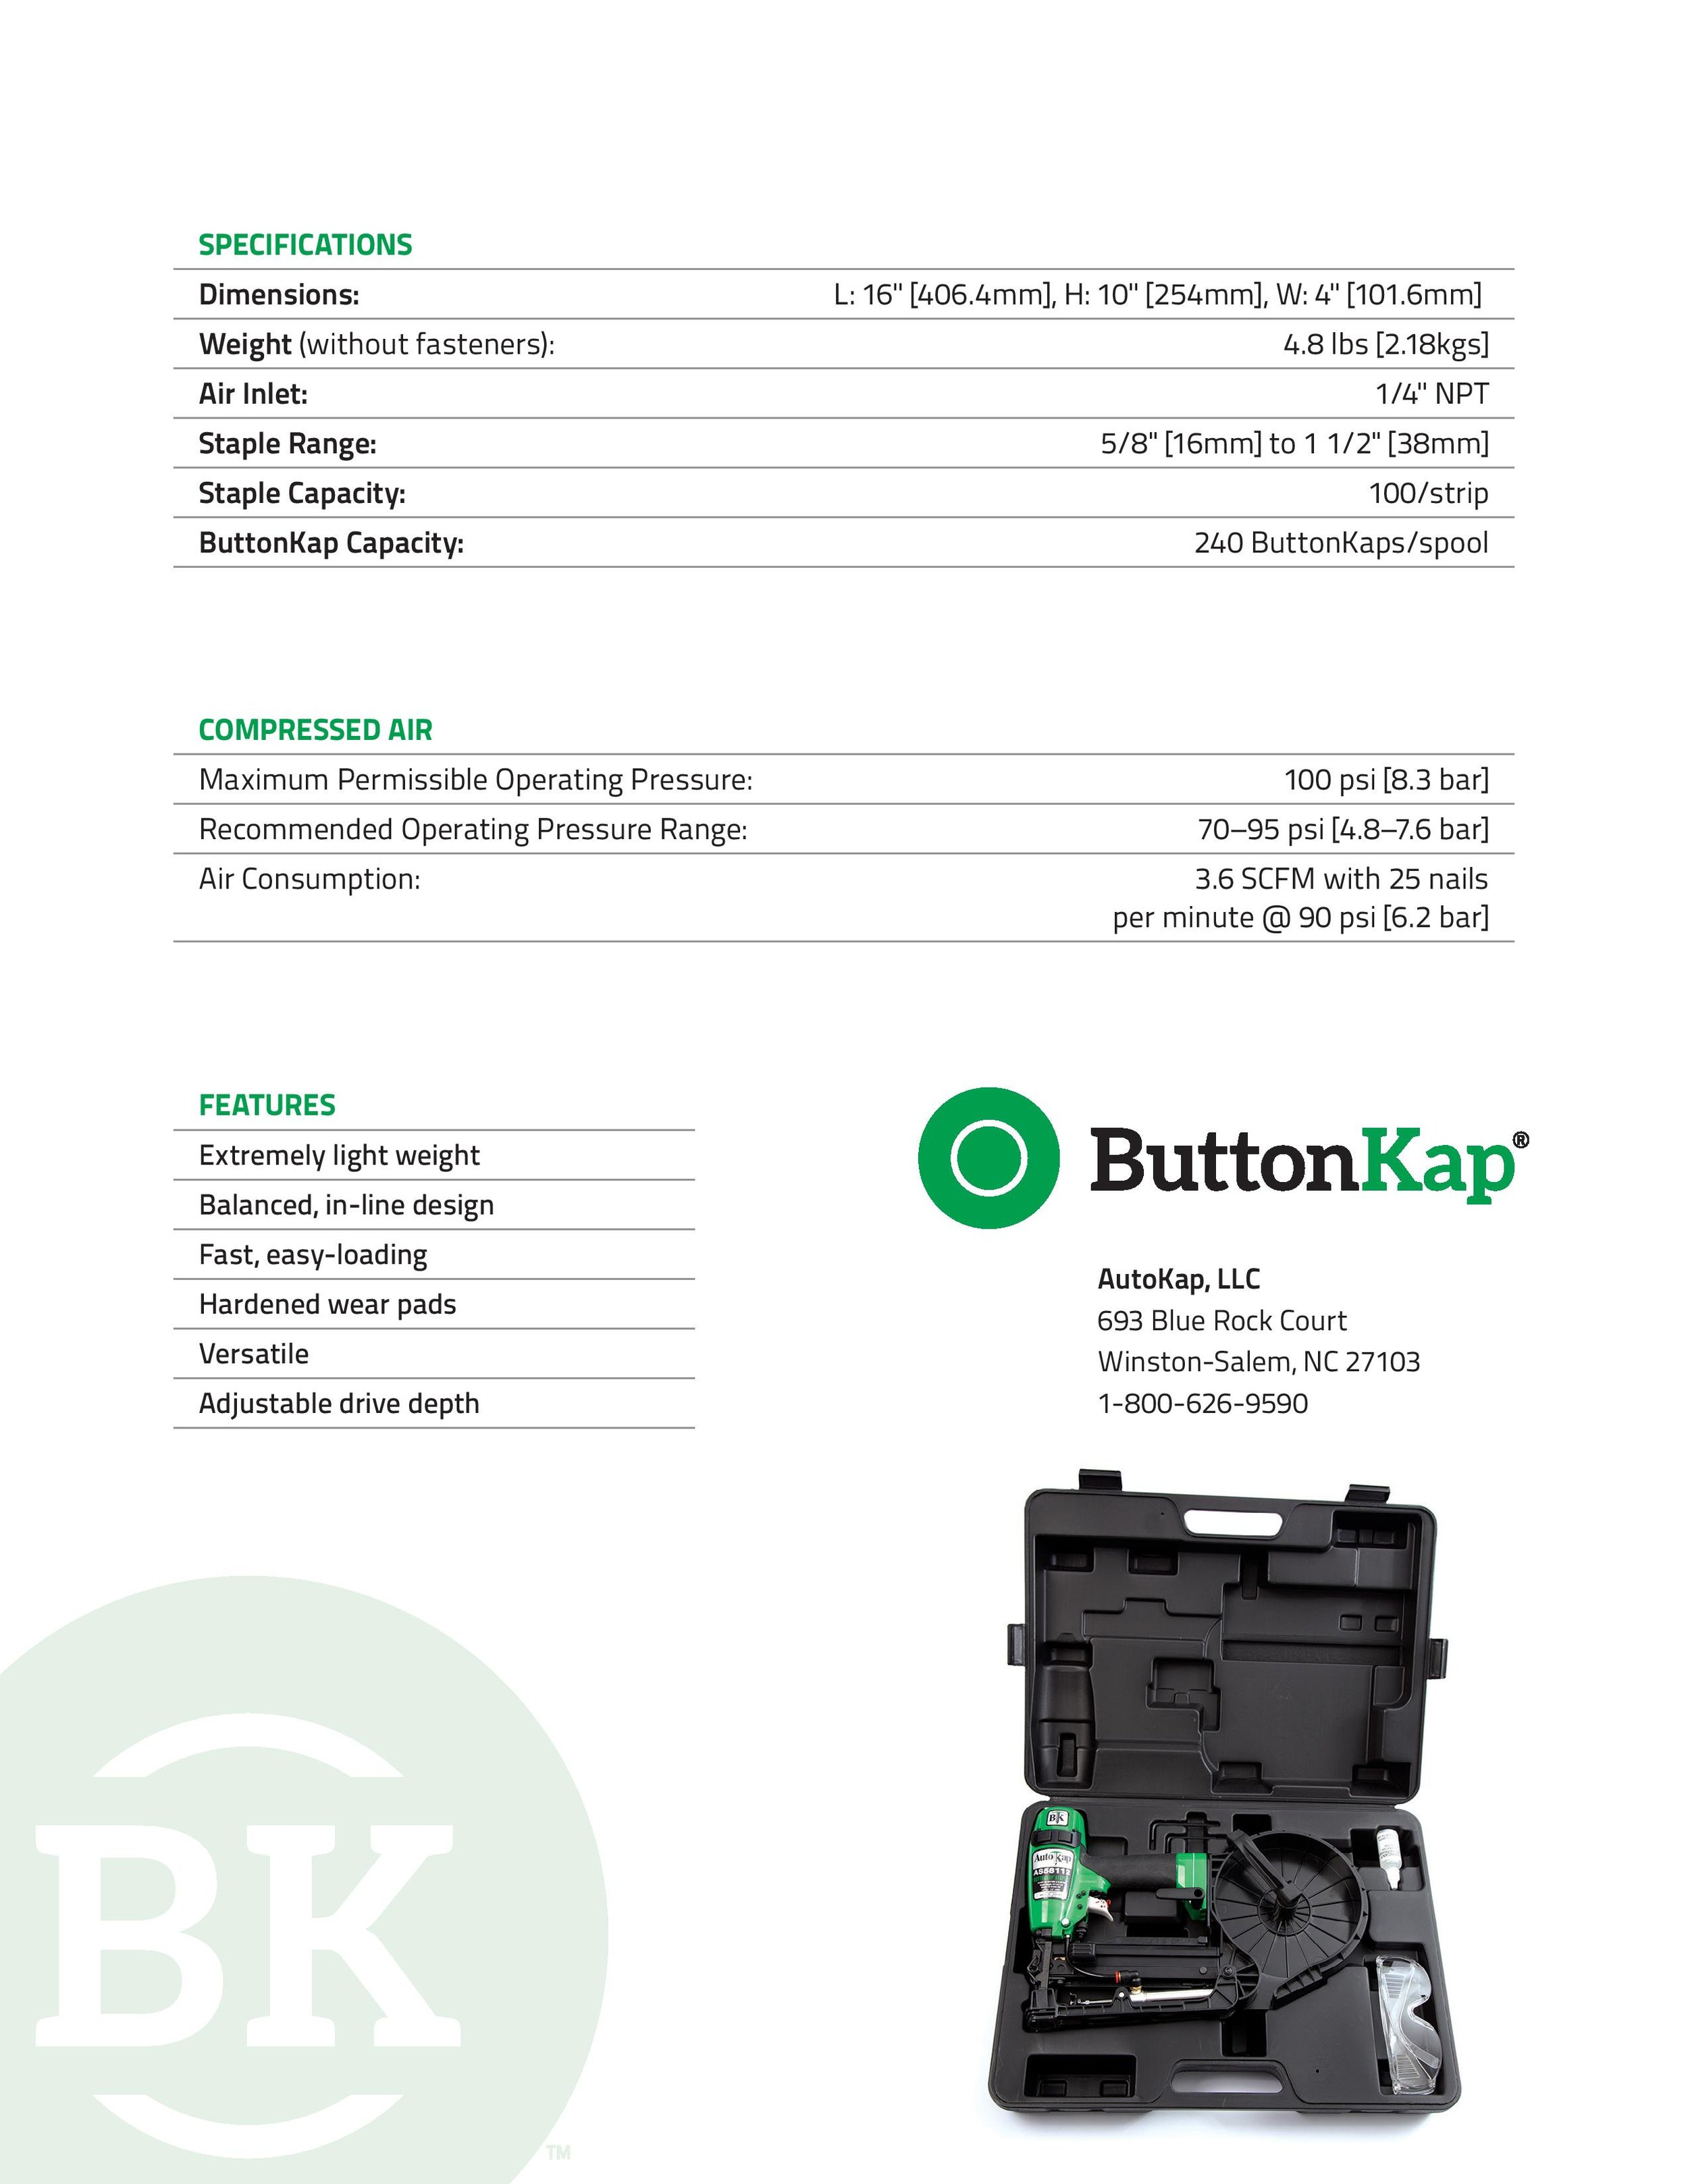 Button_Kap_As58112_Stapler_Sheet-page-002.jpg